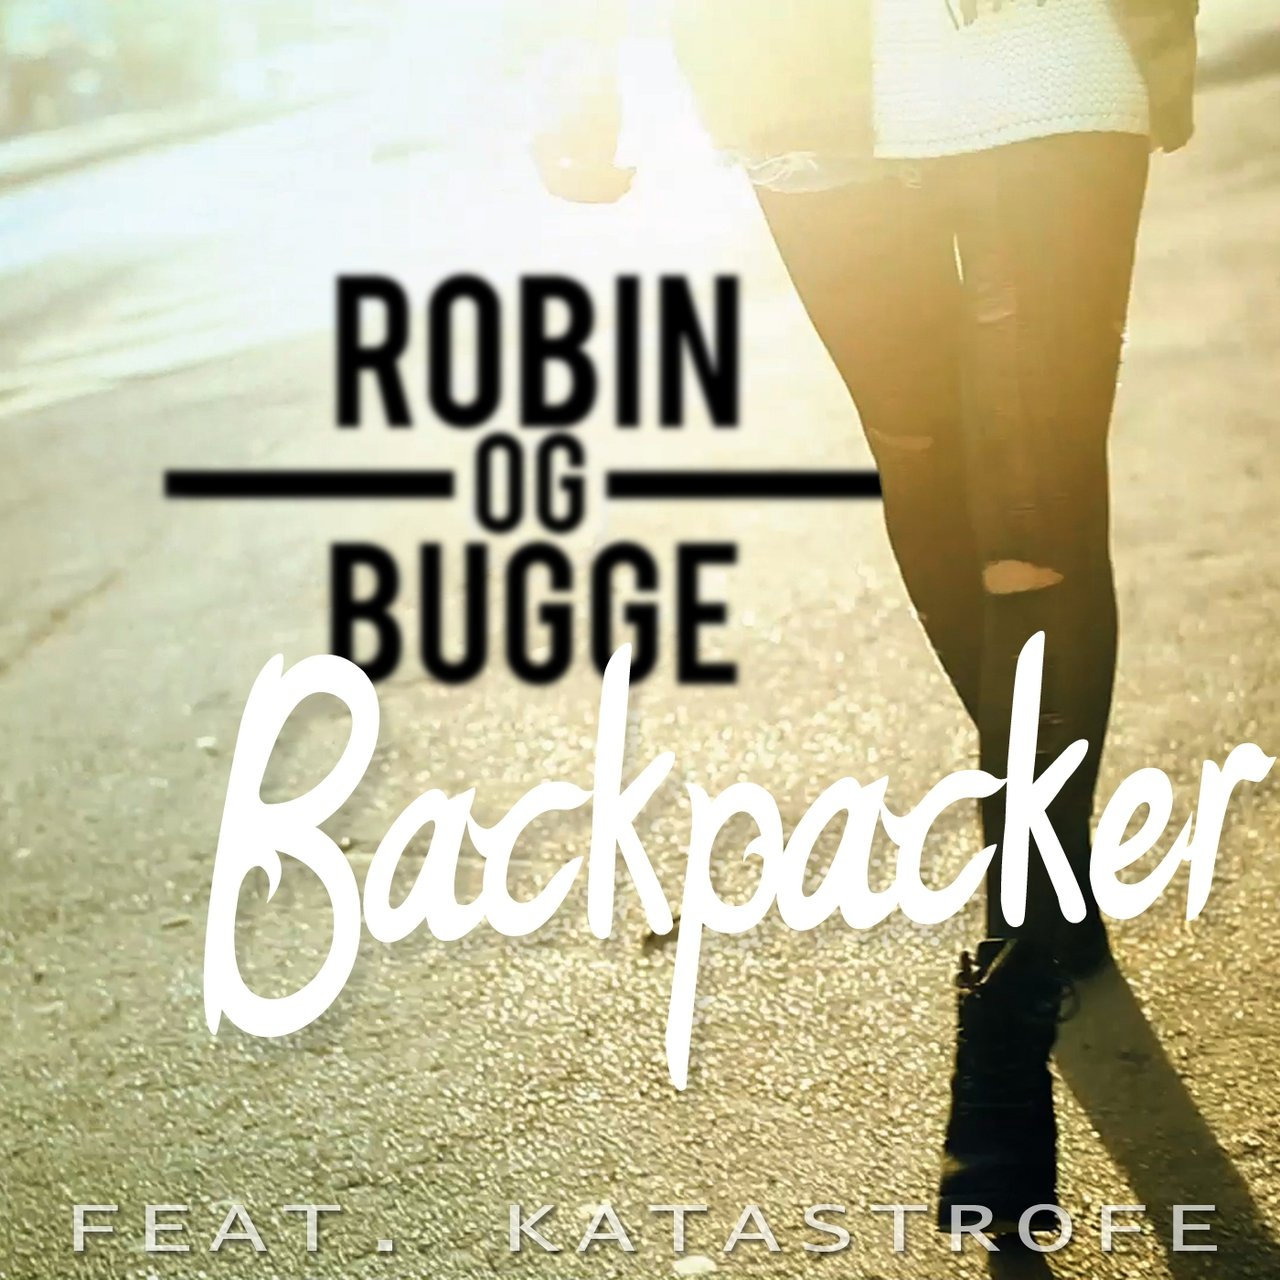 Backpacker (feat. Katastrofe)